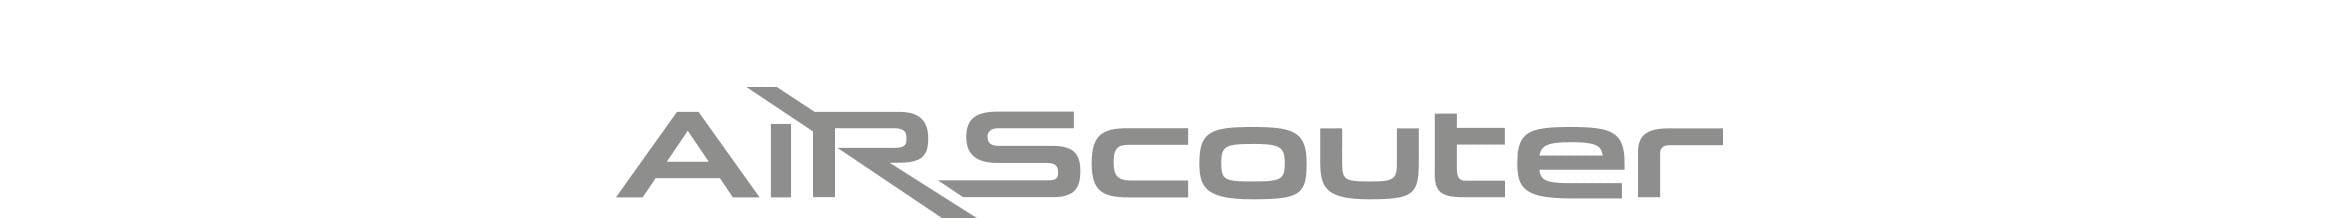 AiRScouter – Head-Mounted Display